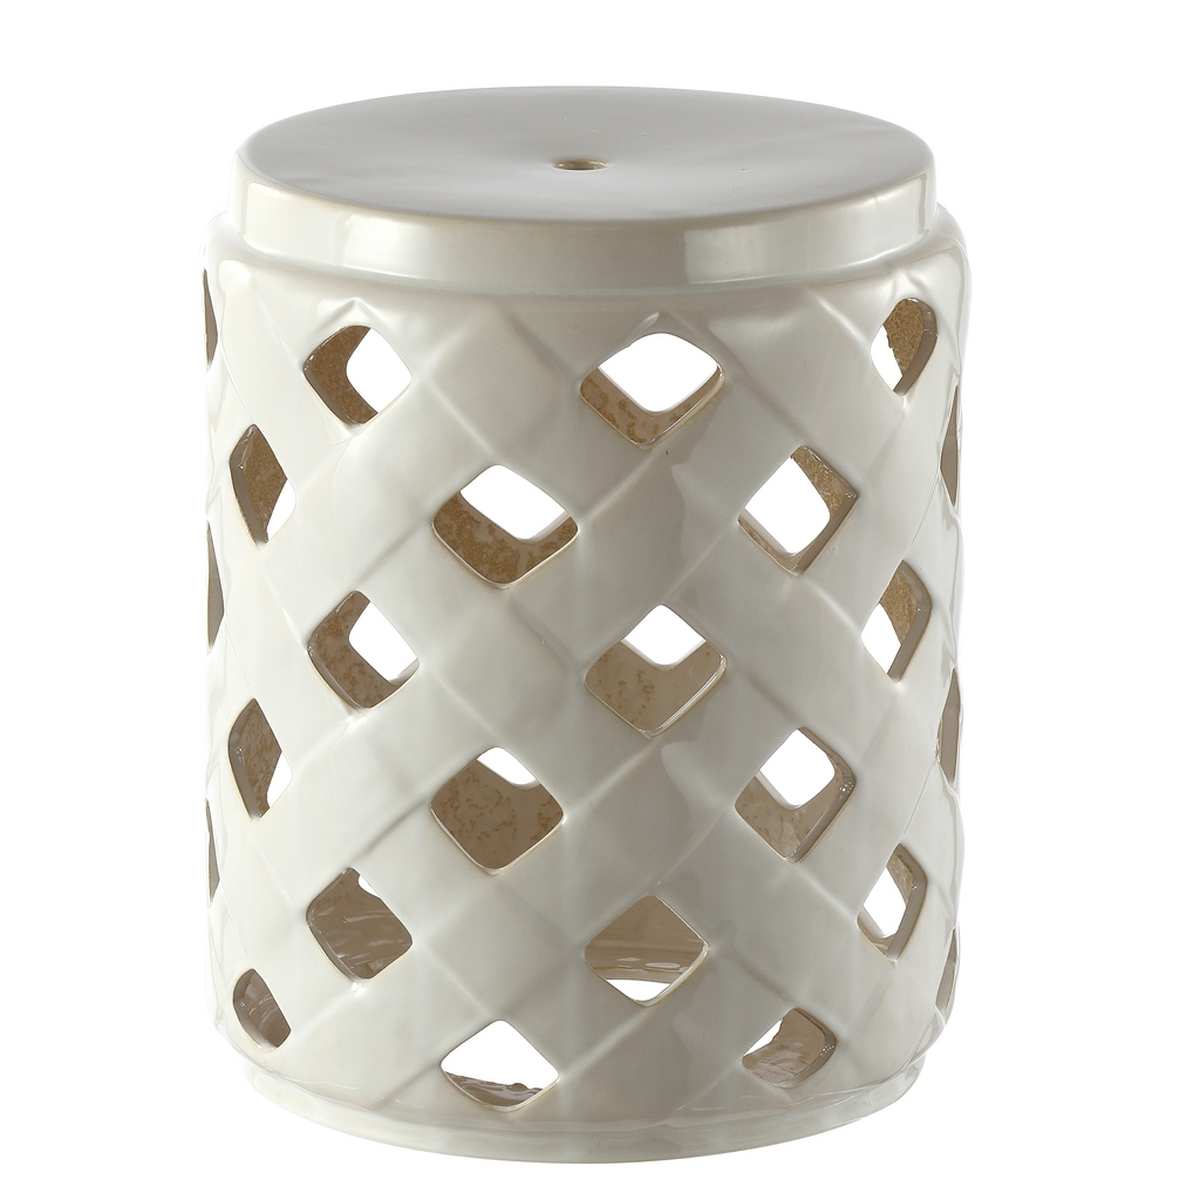 Most Recently Released Ceramic Garden Stools Within Acs4574b Garden Stools – Safavieh (View 13 of 30)